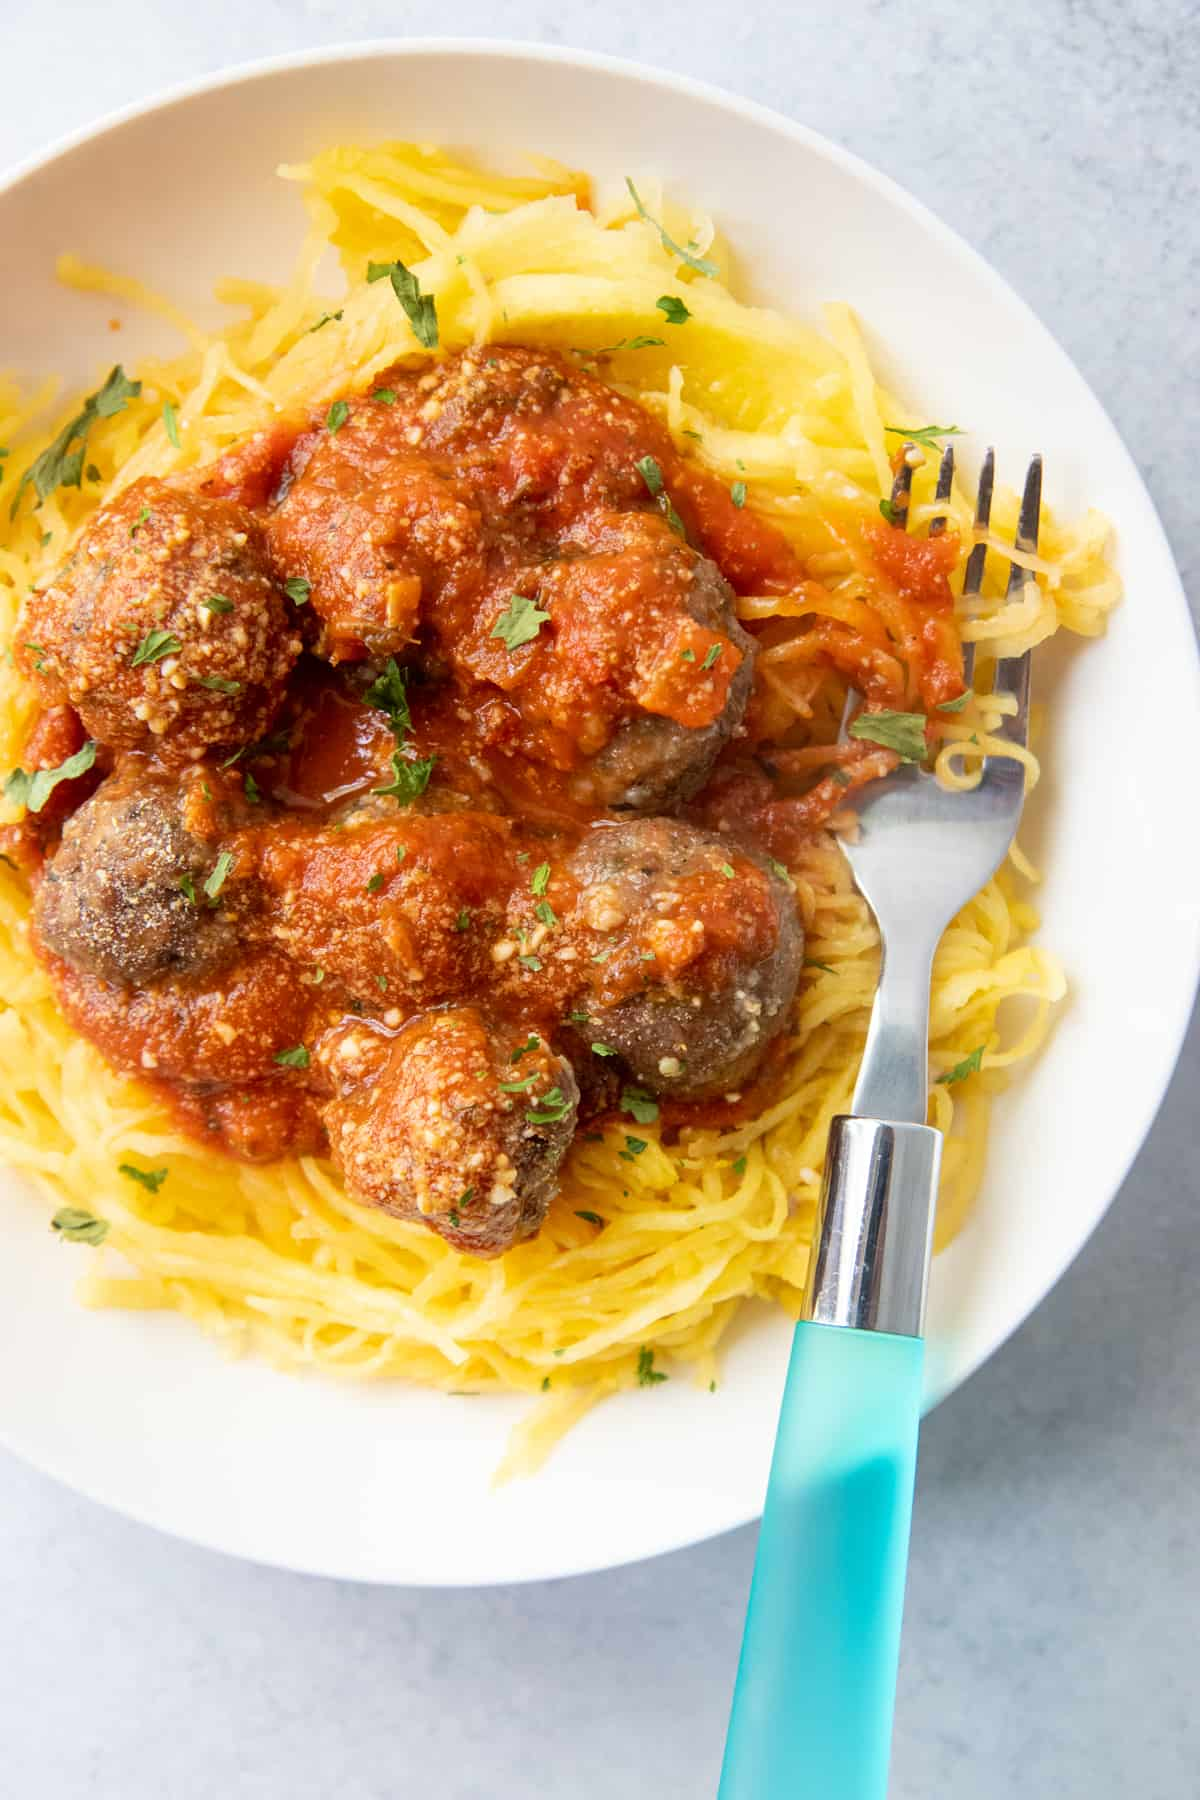 Spaghetti squash noodles are covered in marinara and topped with meatballs. The noodles are on a white plate with a blue-handled fork.